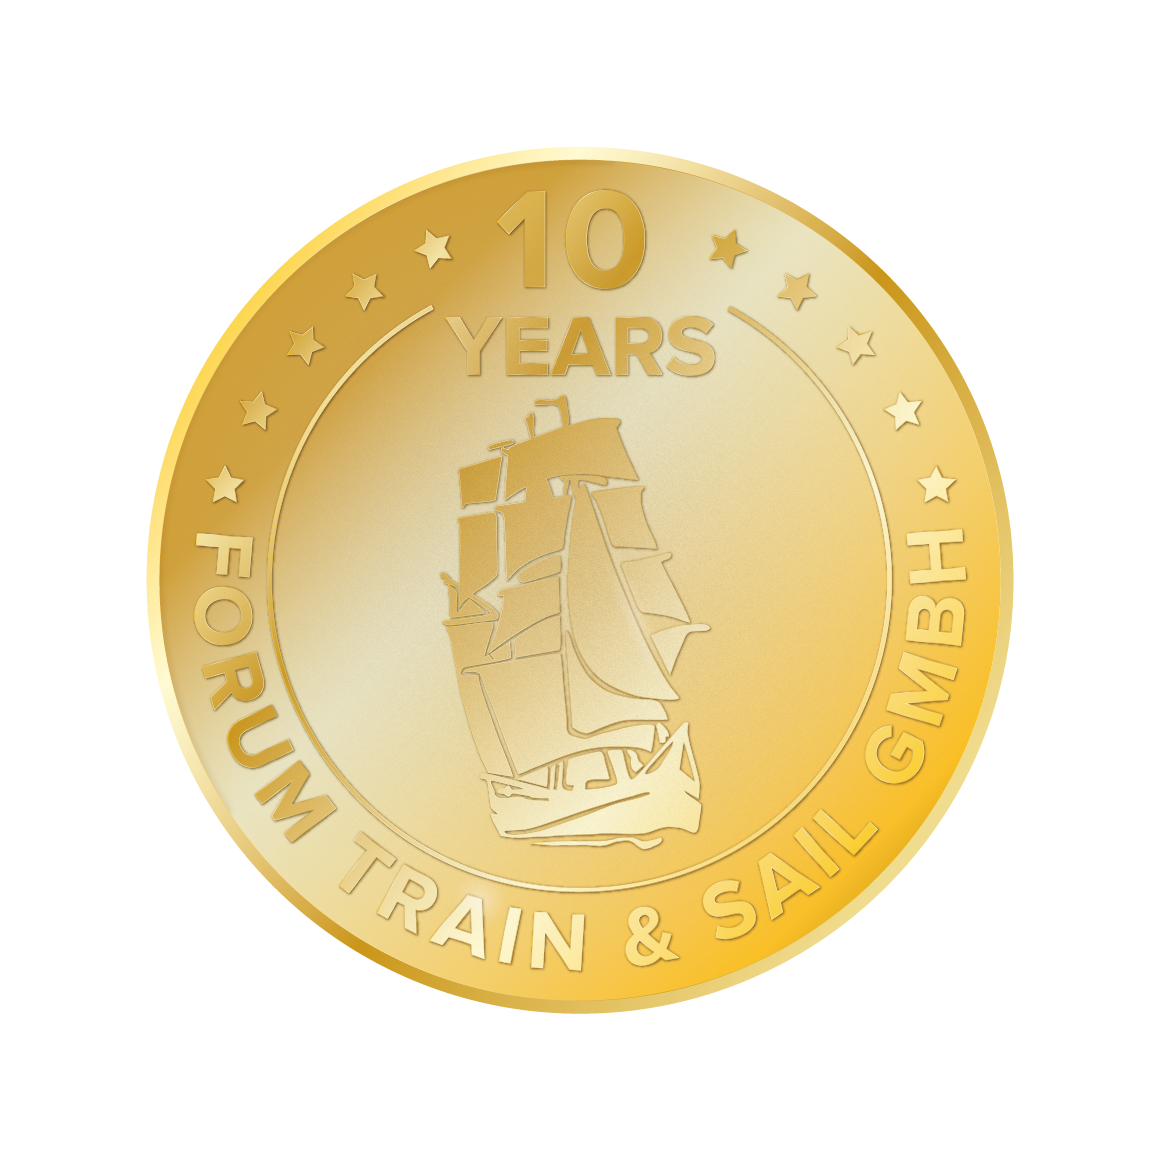 10years muenze 300dpi